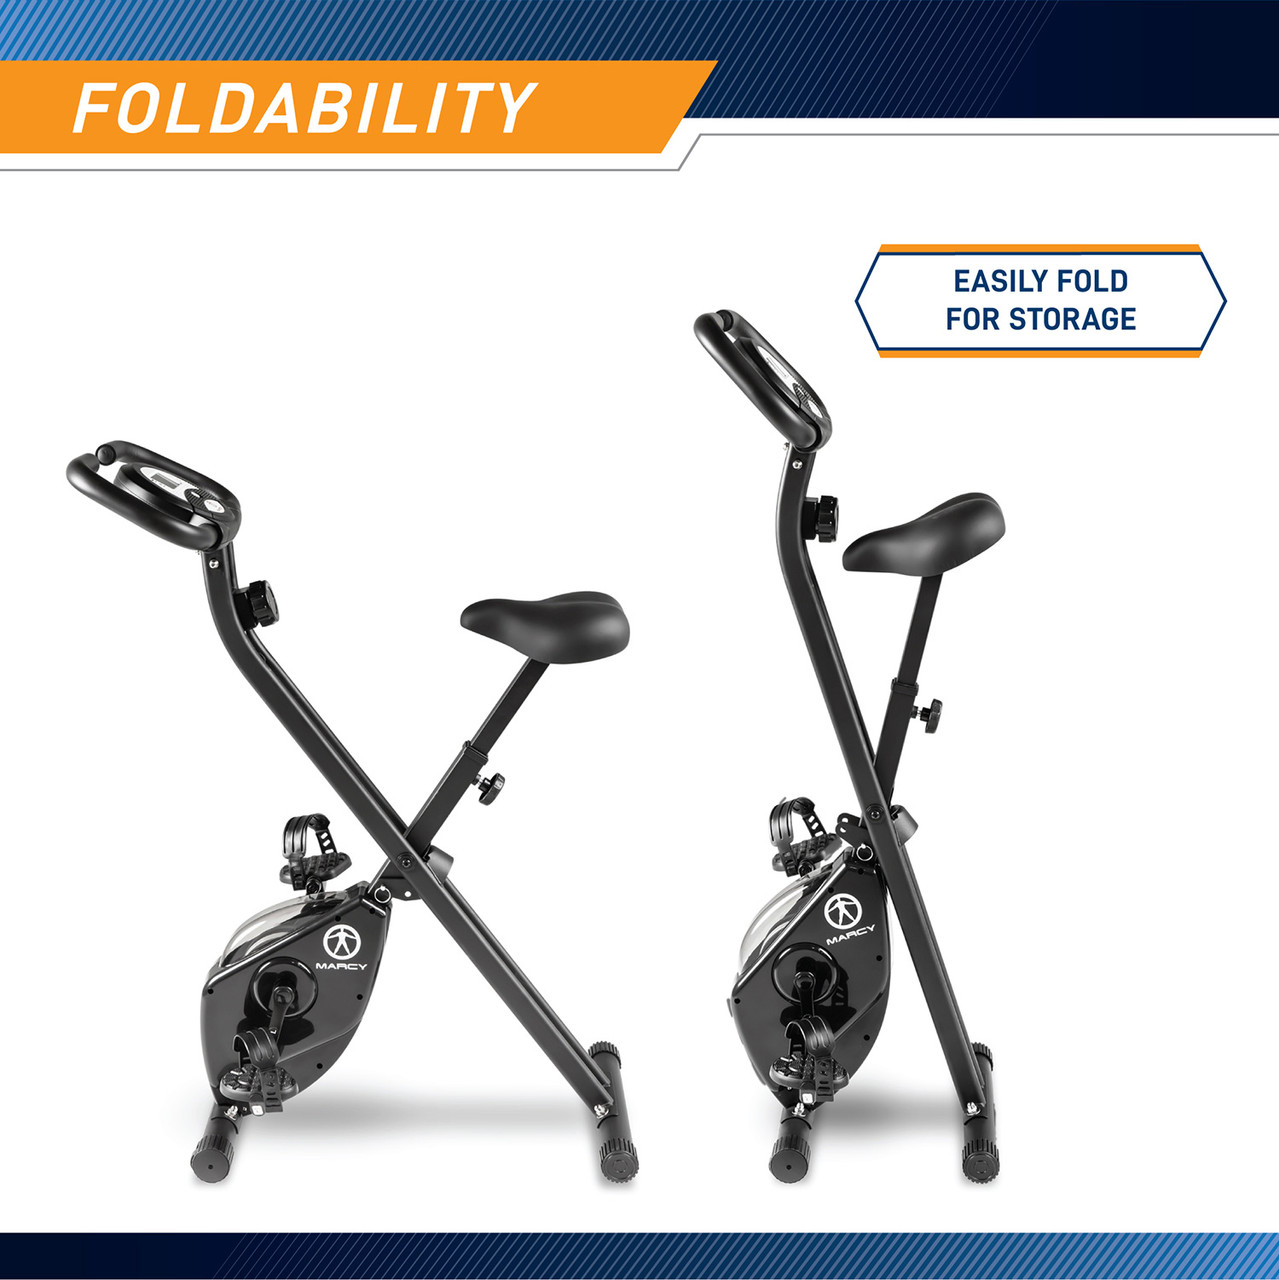 The Foldable NS-654 Bike has a compact storage design